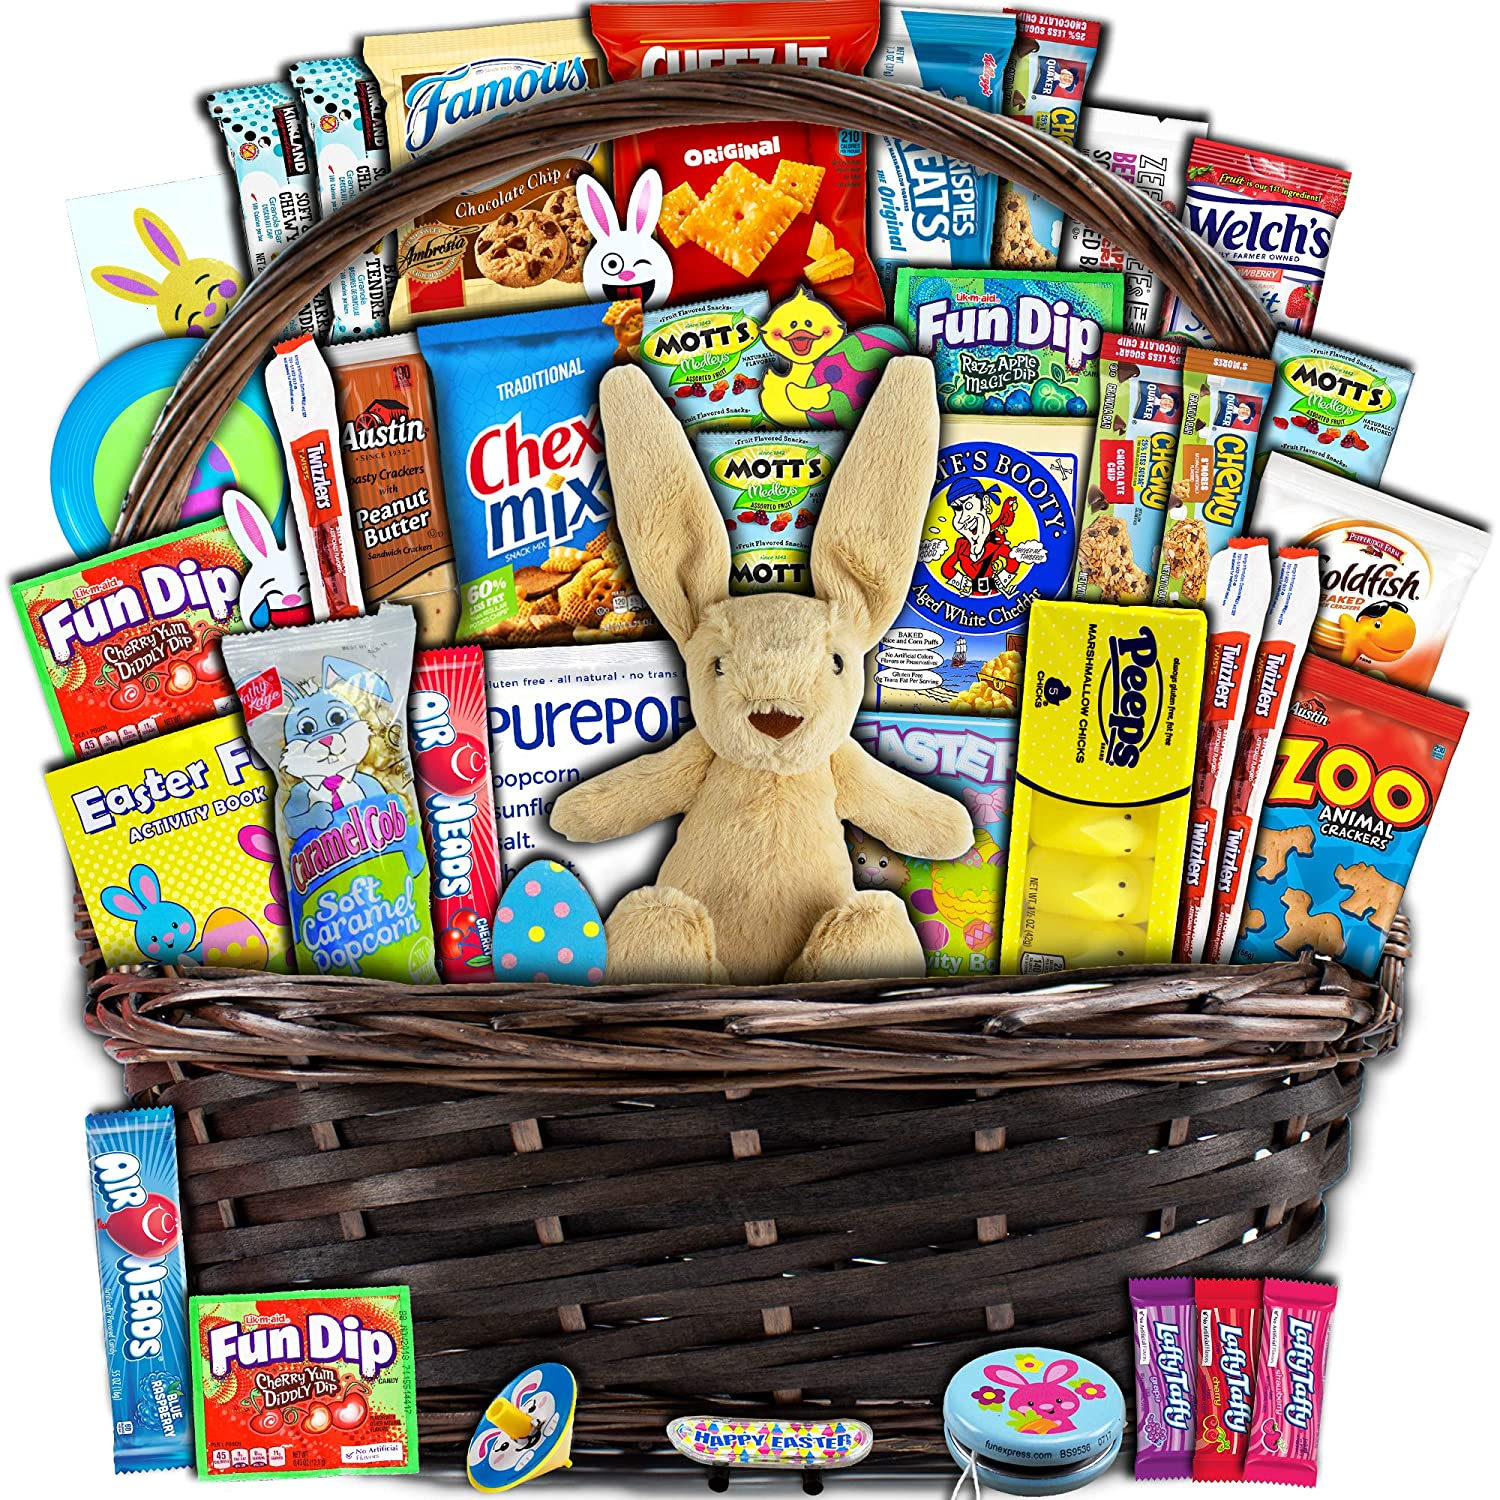 Amazon Com Easter Gift Basket For Kids And Adults 40ct Already Filled Wrapped With Plush Easter Bunny Chocolate Candy Peeps And Toys Boys Girls Grandchildren Young Children Toddlers Men Women,Best Home Decor Shopping Websites